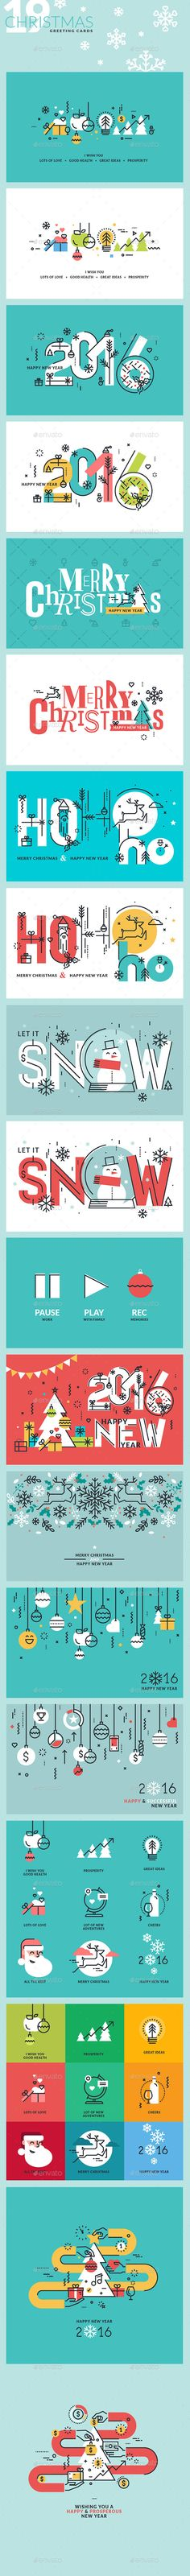 Set of Flat Line Design Christmas Greeting Cards Template Vector EPS, AI #design Download: http://graphicriver.net/item/set-of-flat-line-design-christmas-greeting-cards-/13709421?ref=ksioks